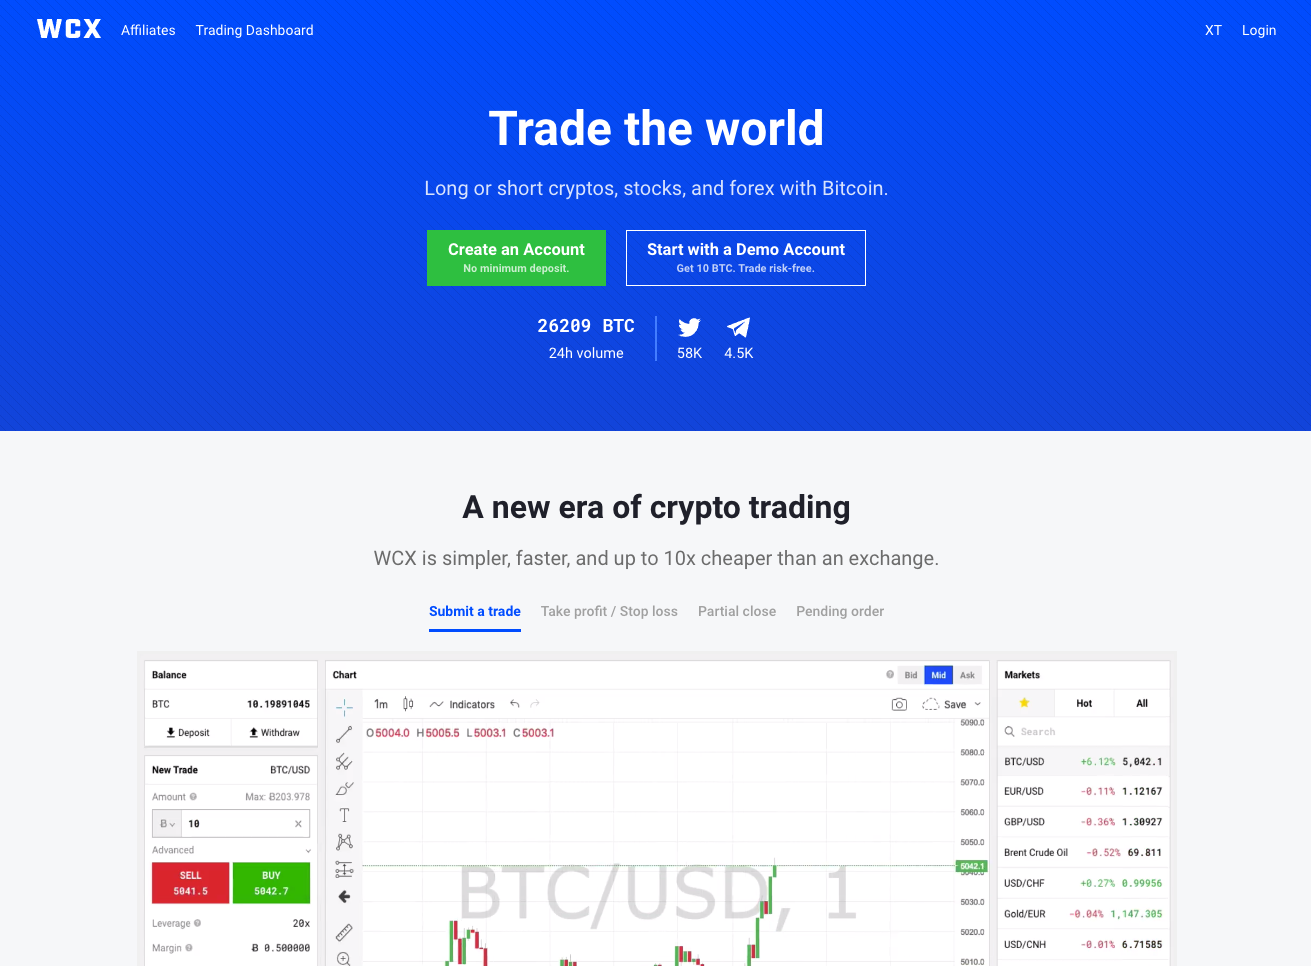 WCX Complete Review: Trade Financial Markets with Bitcoin